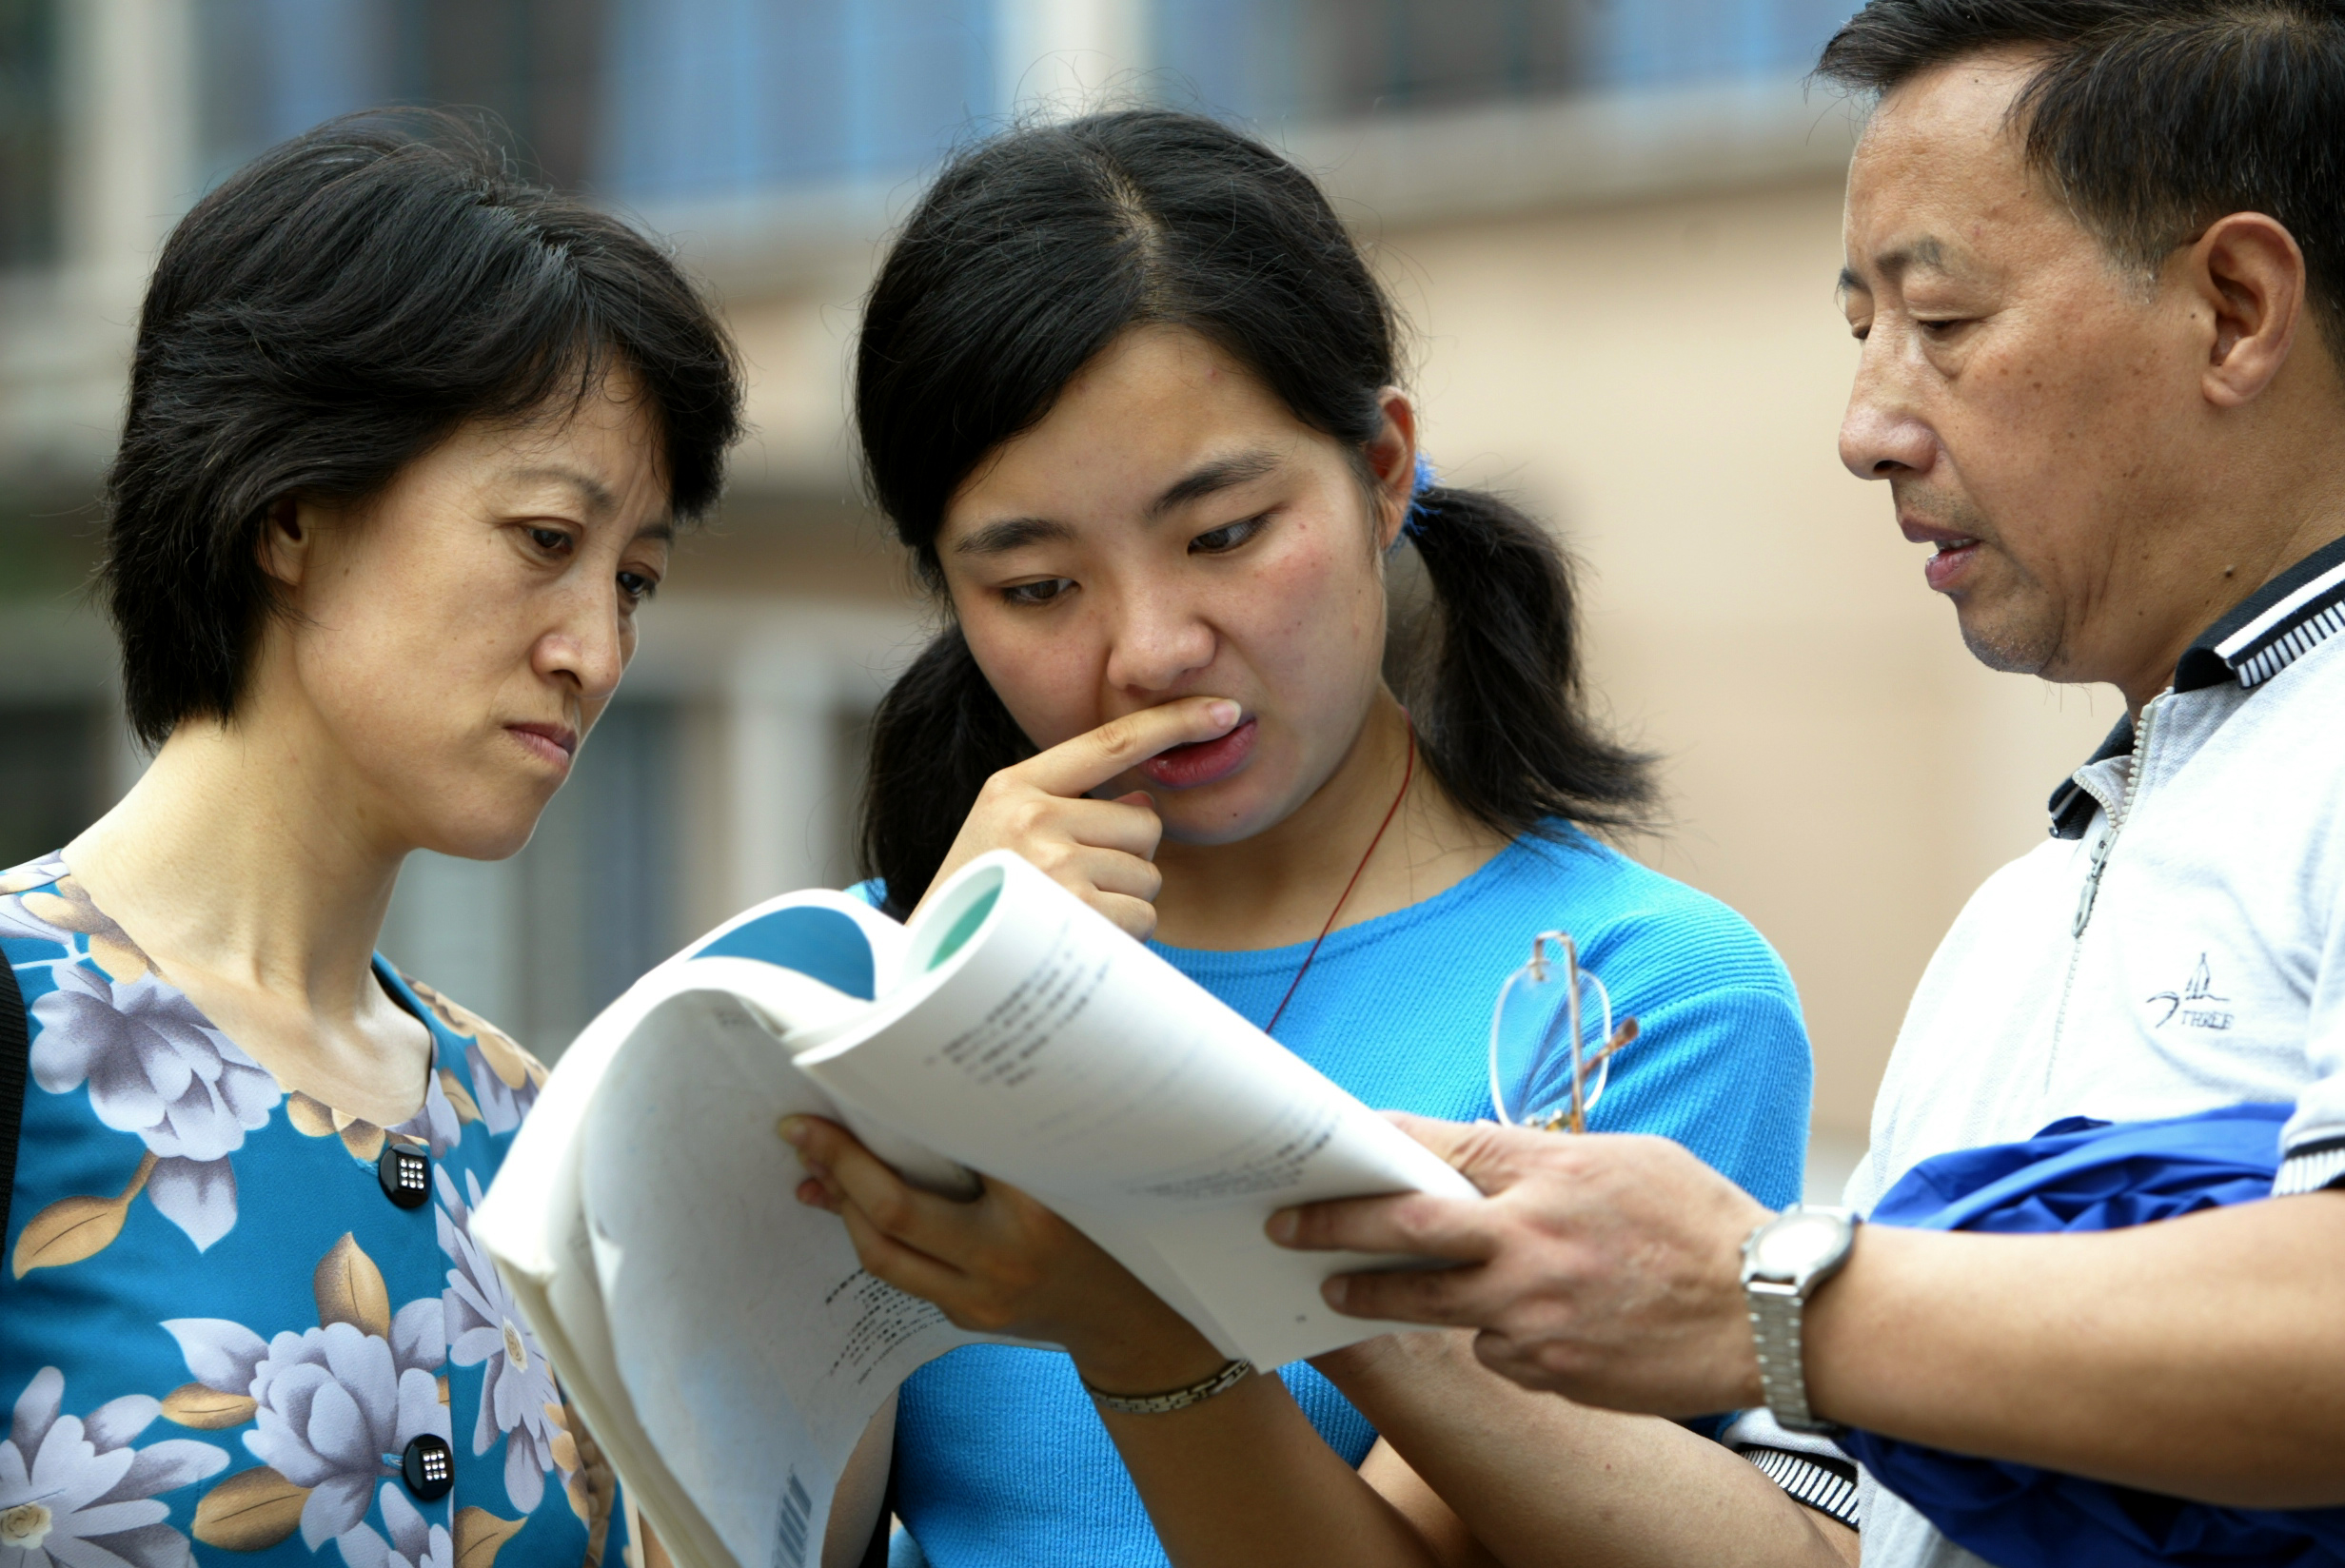 50,000 Shanghai students set to take college entrance examination